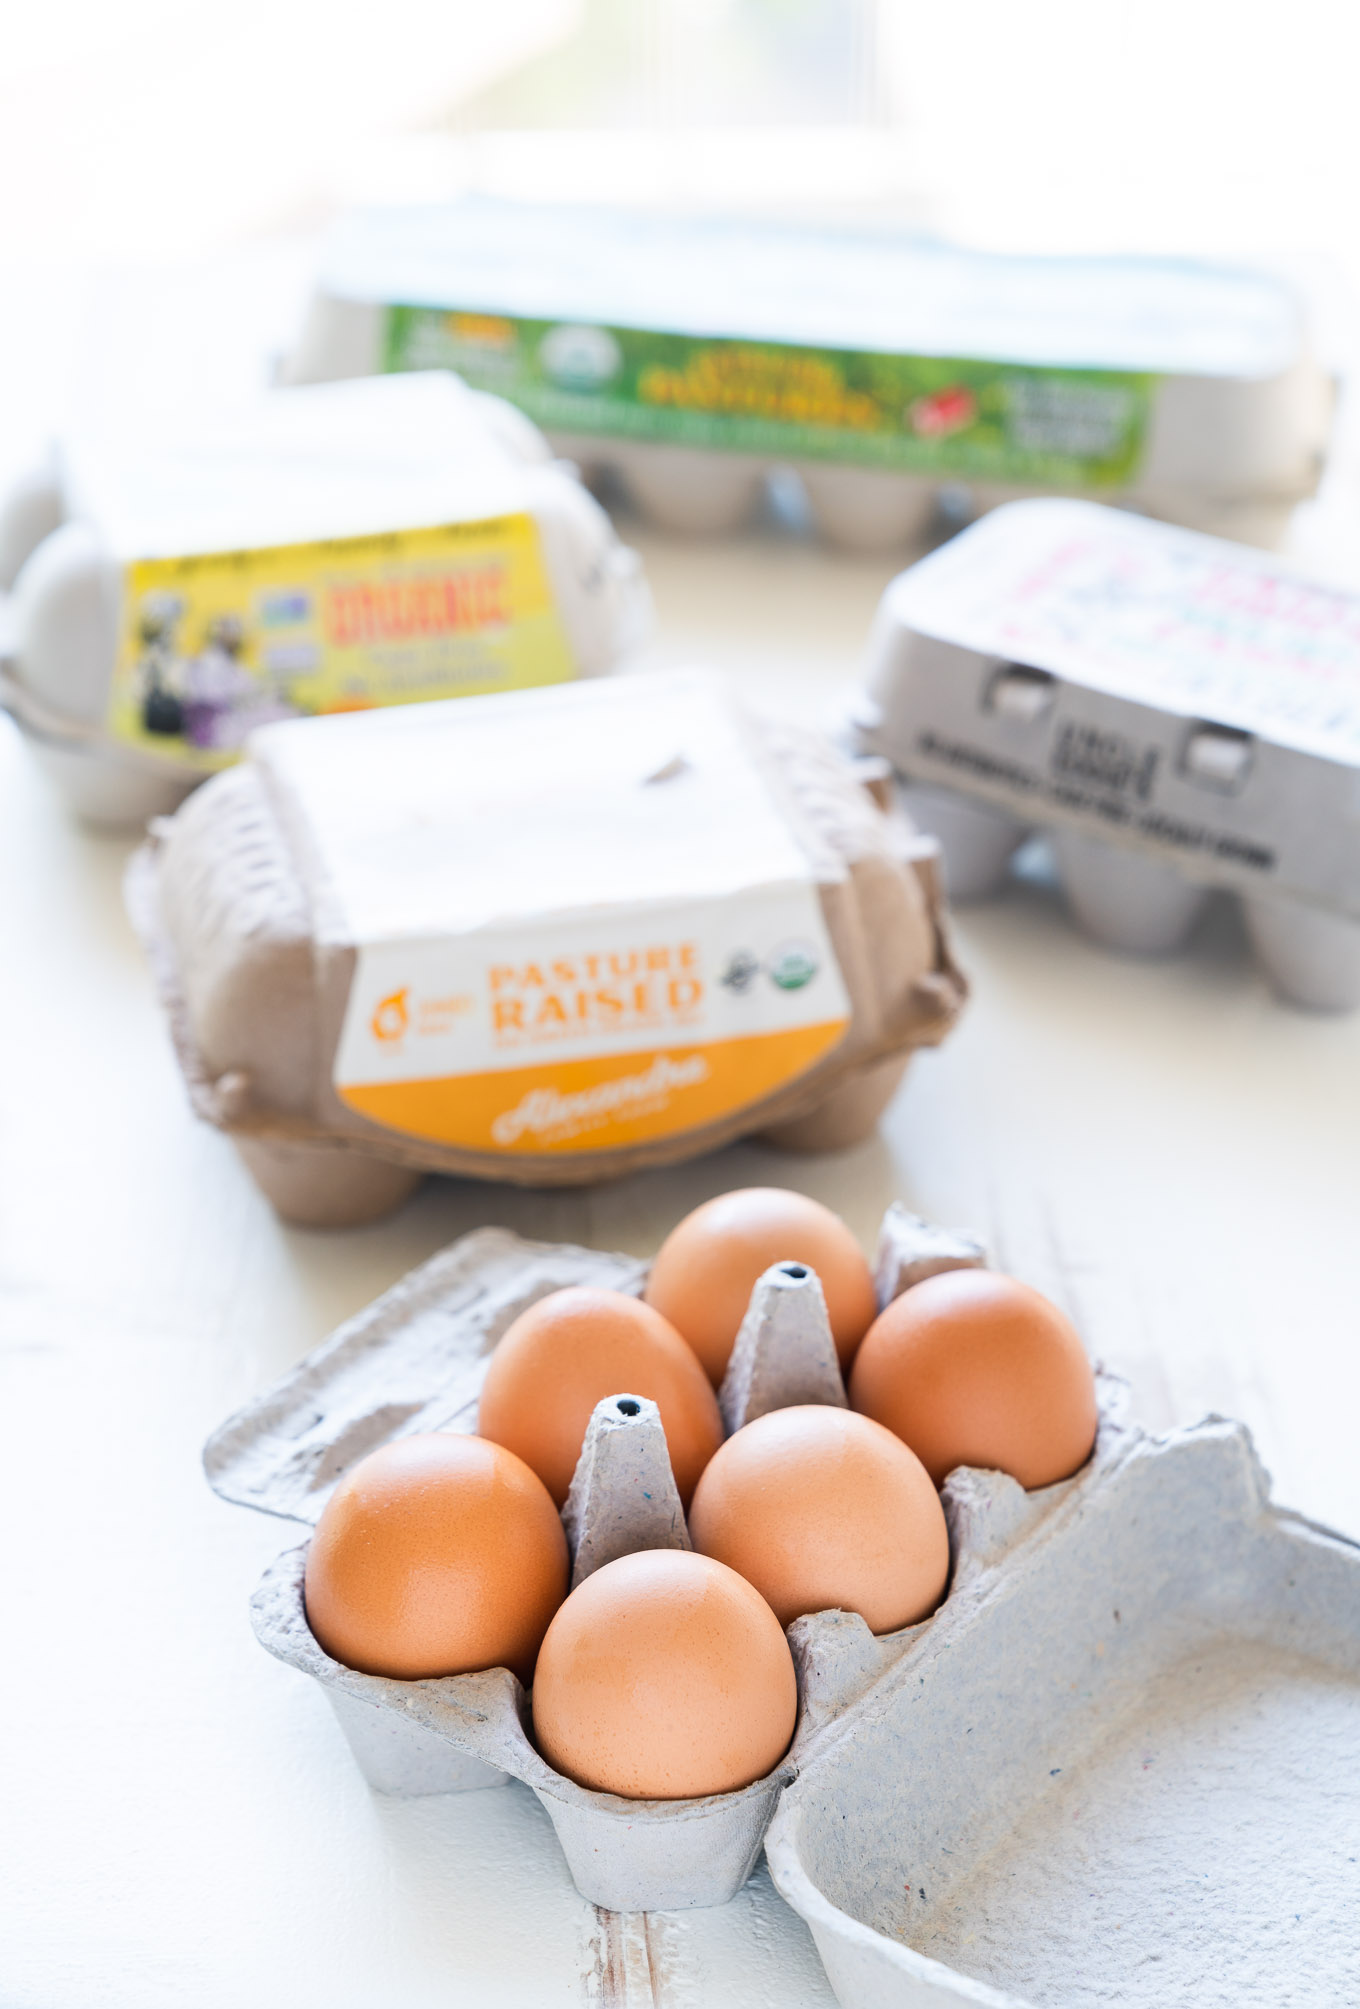 Cage-free Free-range Pasture-raised eggs - five cartons with eggs